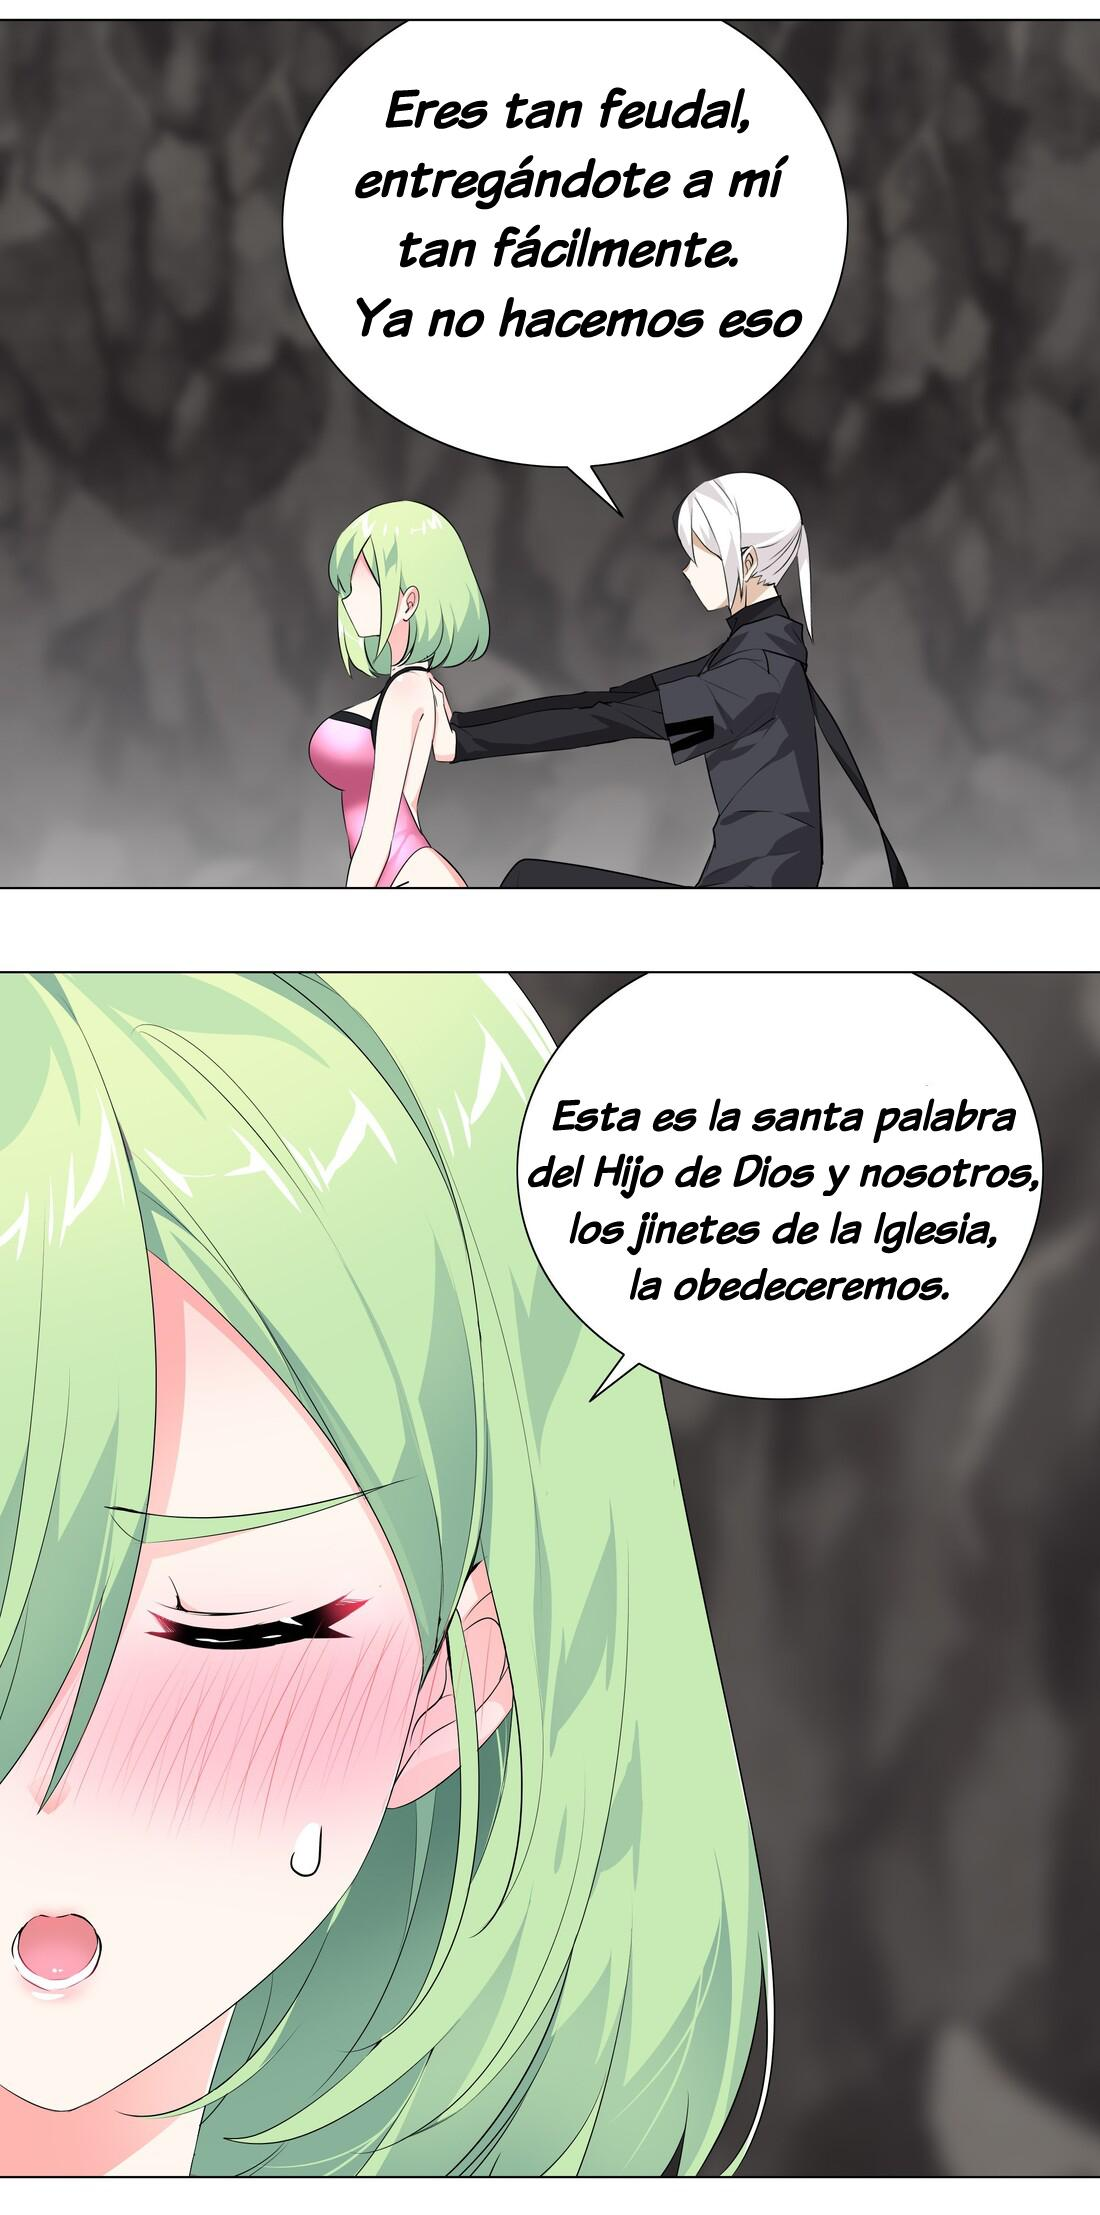 Meizi Tai Duo, Zhihao Feishengle | Manhua Capítulo 12 (parte 2)